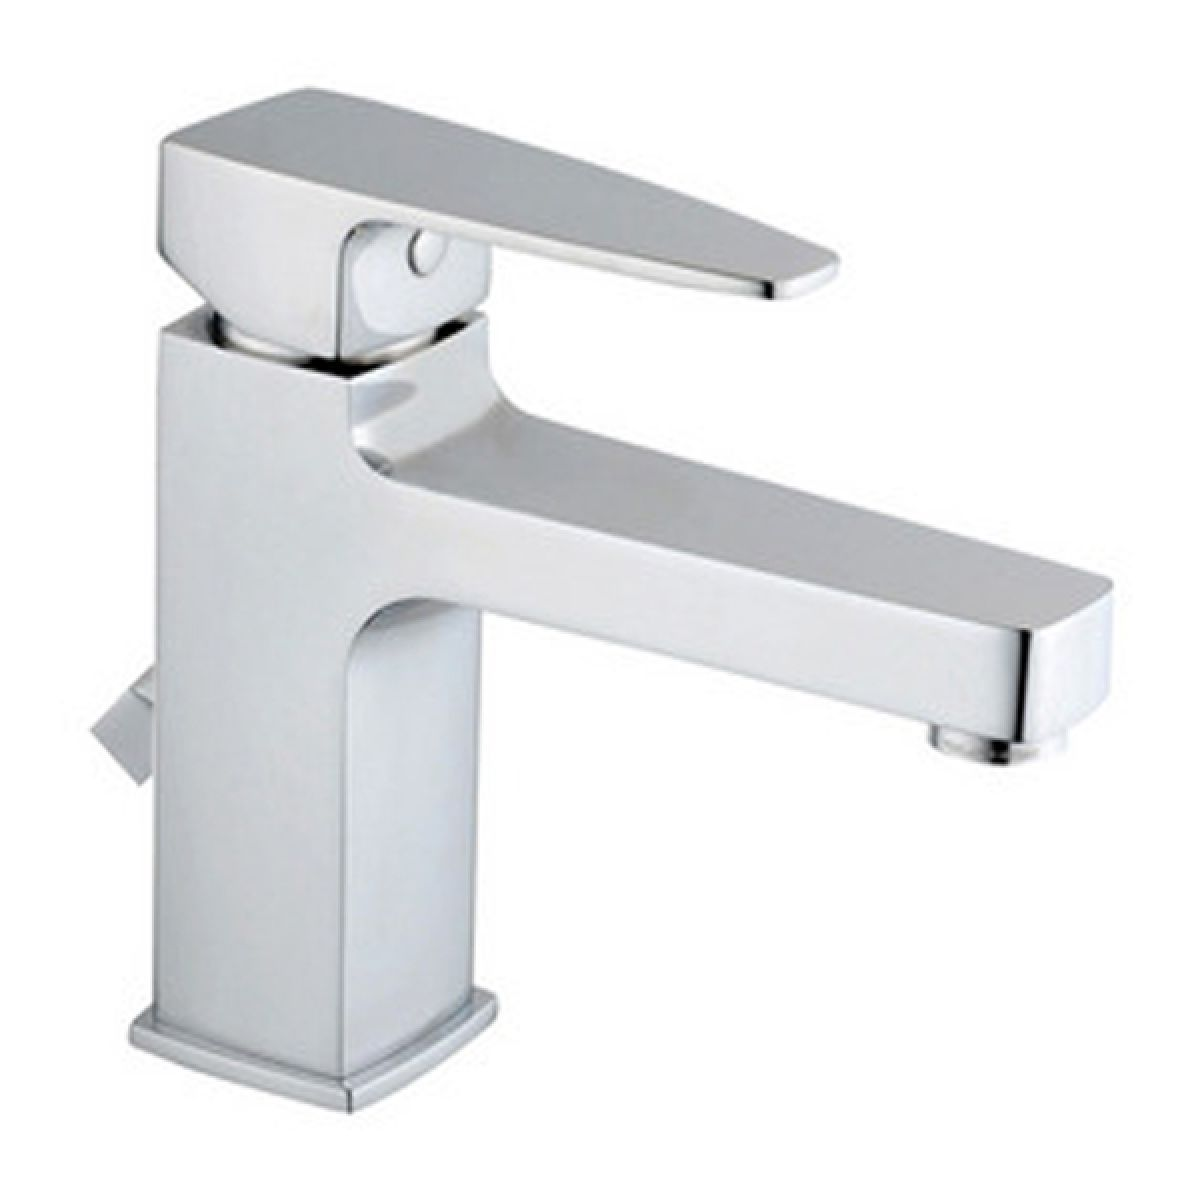 Vitra Q-Line Basin Mixer Tap with Pop-Up Waste